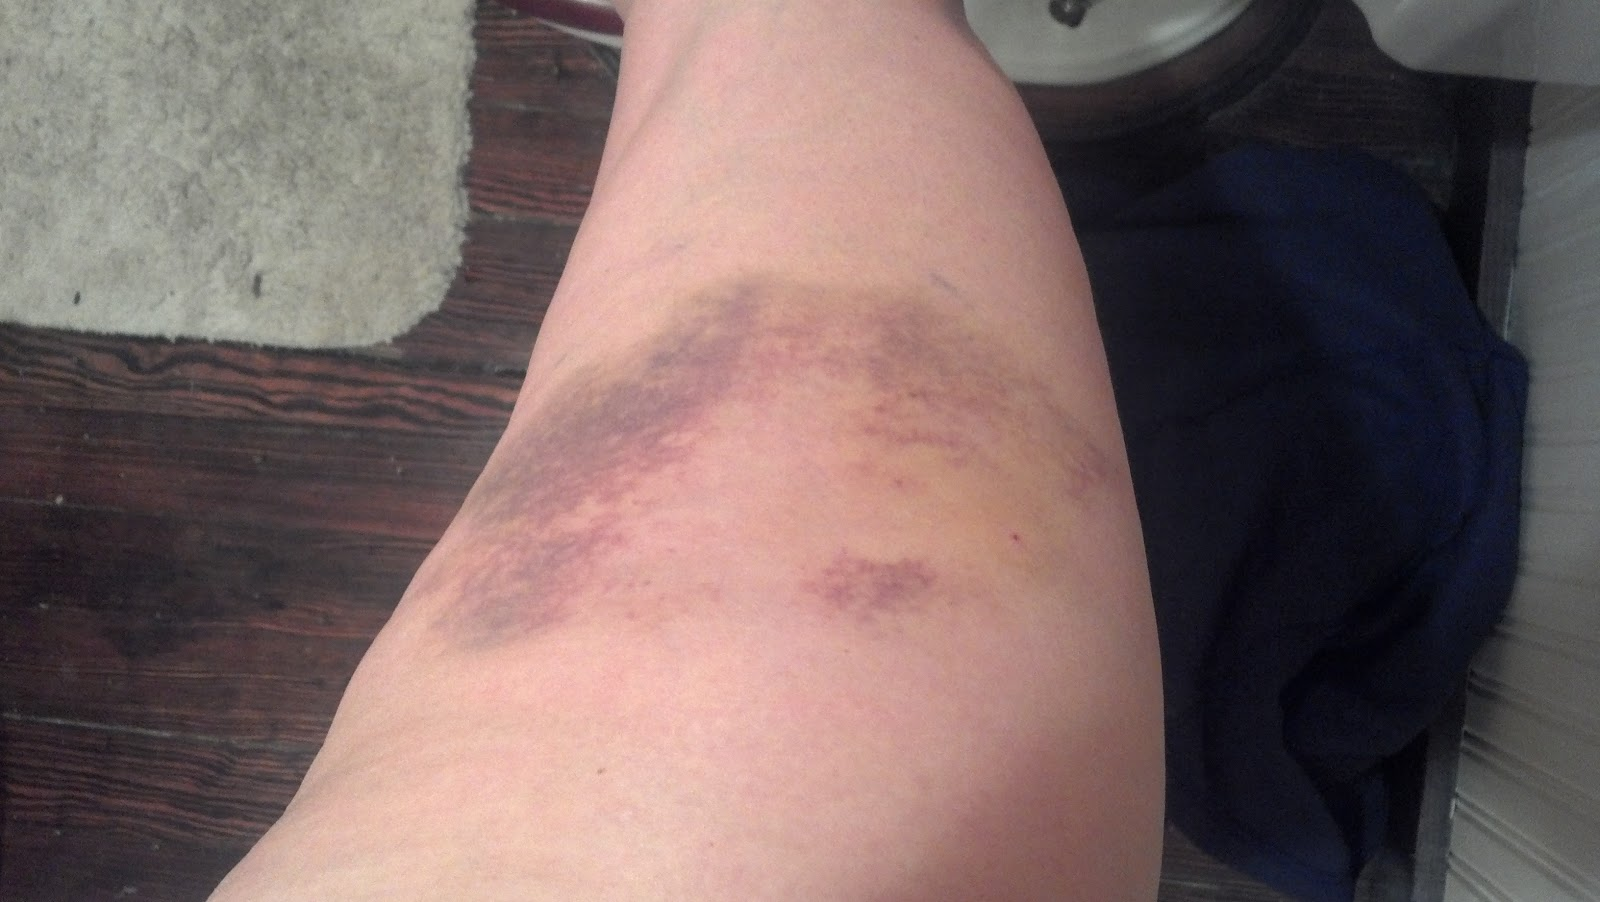 What does it mean if a bruise is yellow  Zocdoc Answers